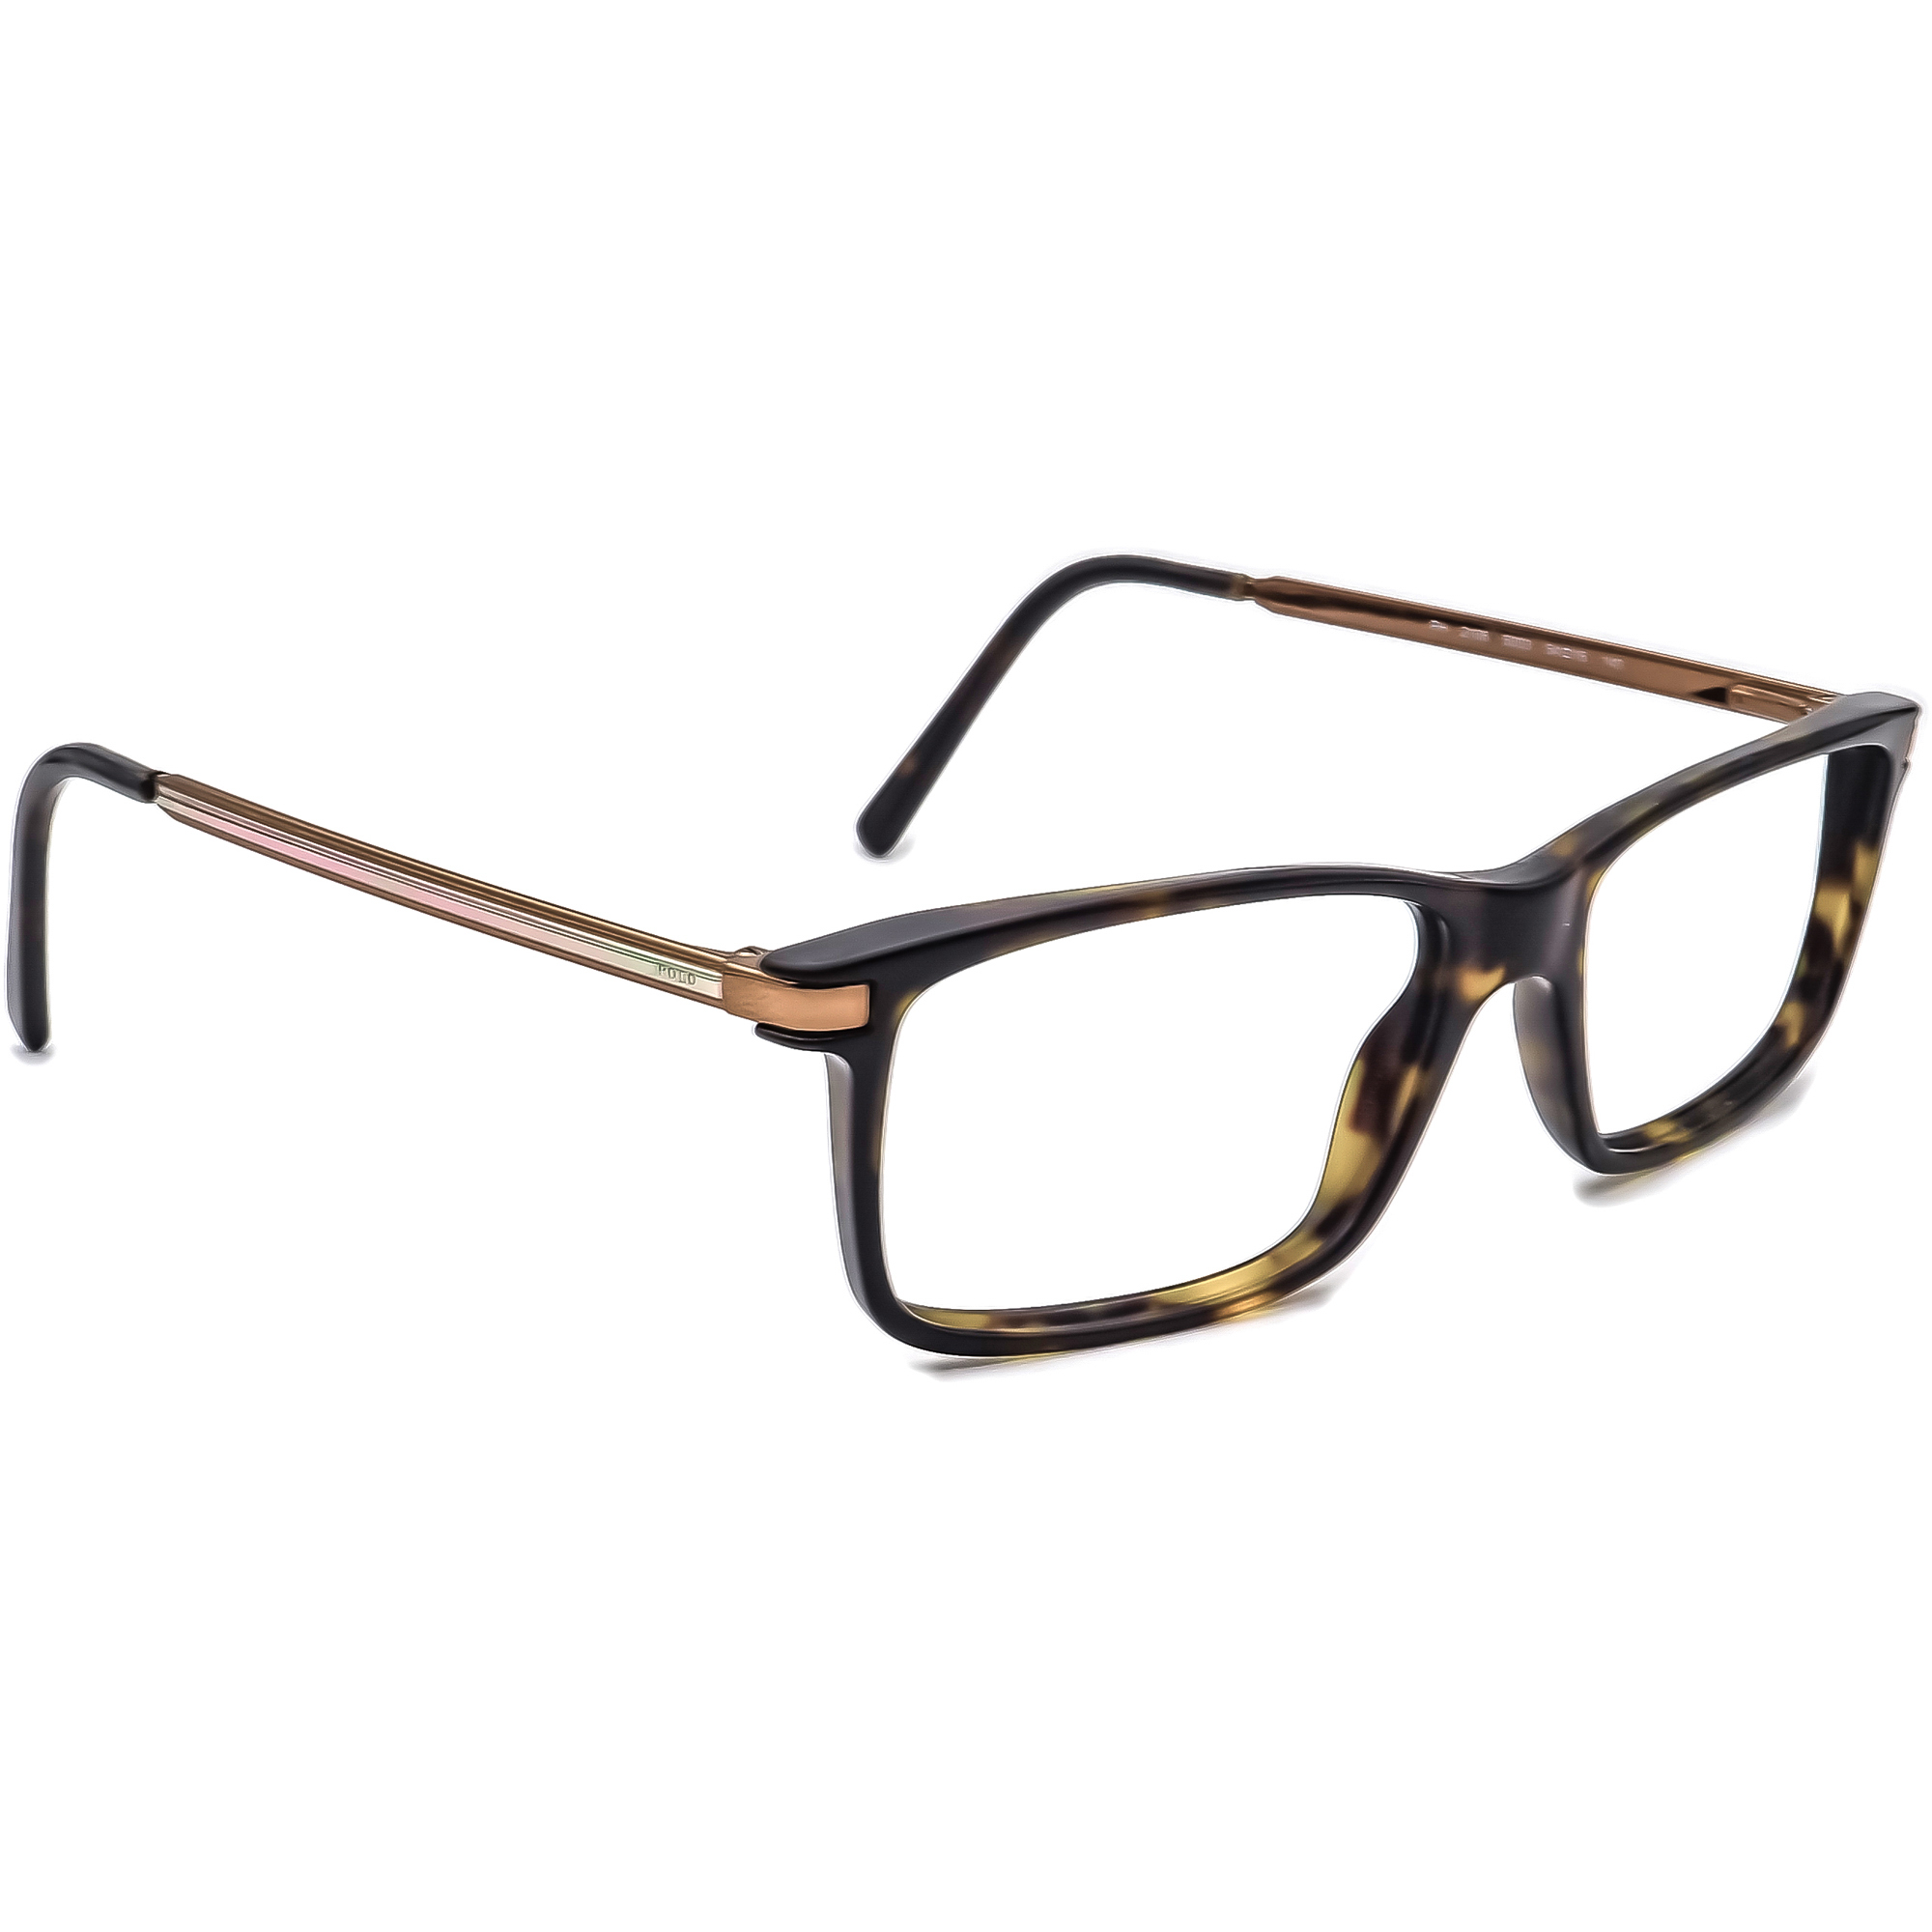 Ralph Lauren Polo PH 2106 5003 Eyeglasses